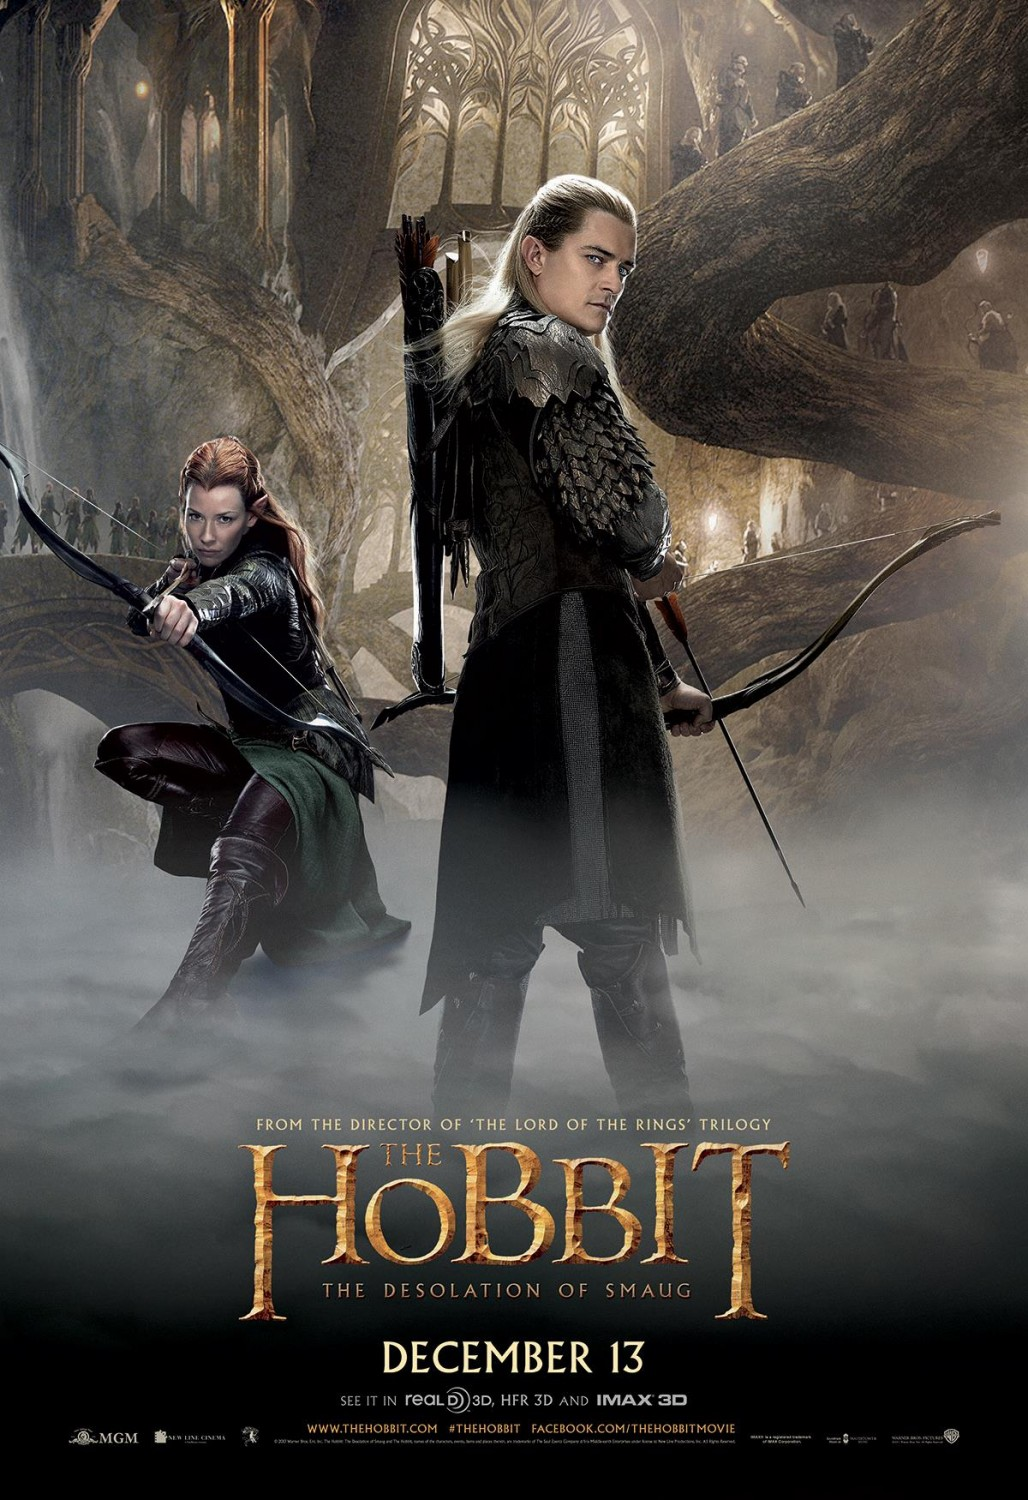 Orlando Bloom As Legolas Greenleaf The Hobbit The Desolat...